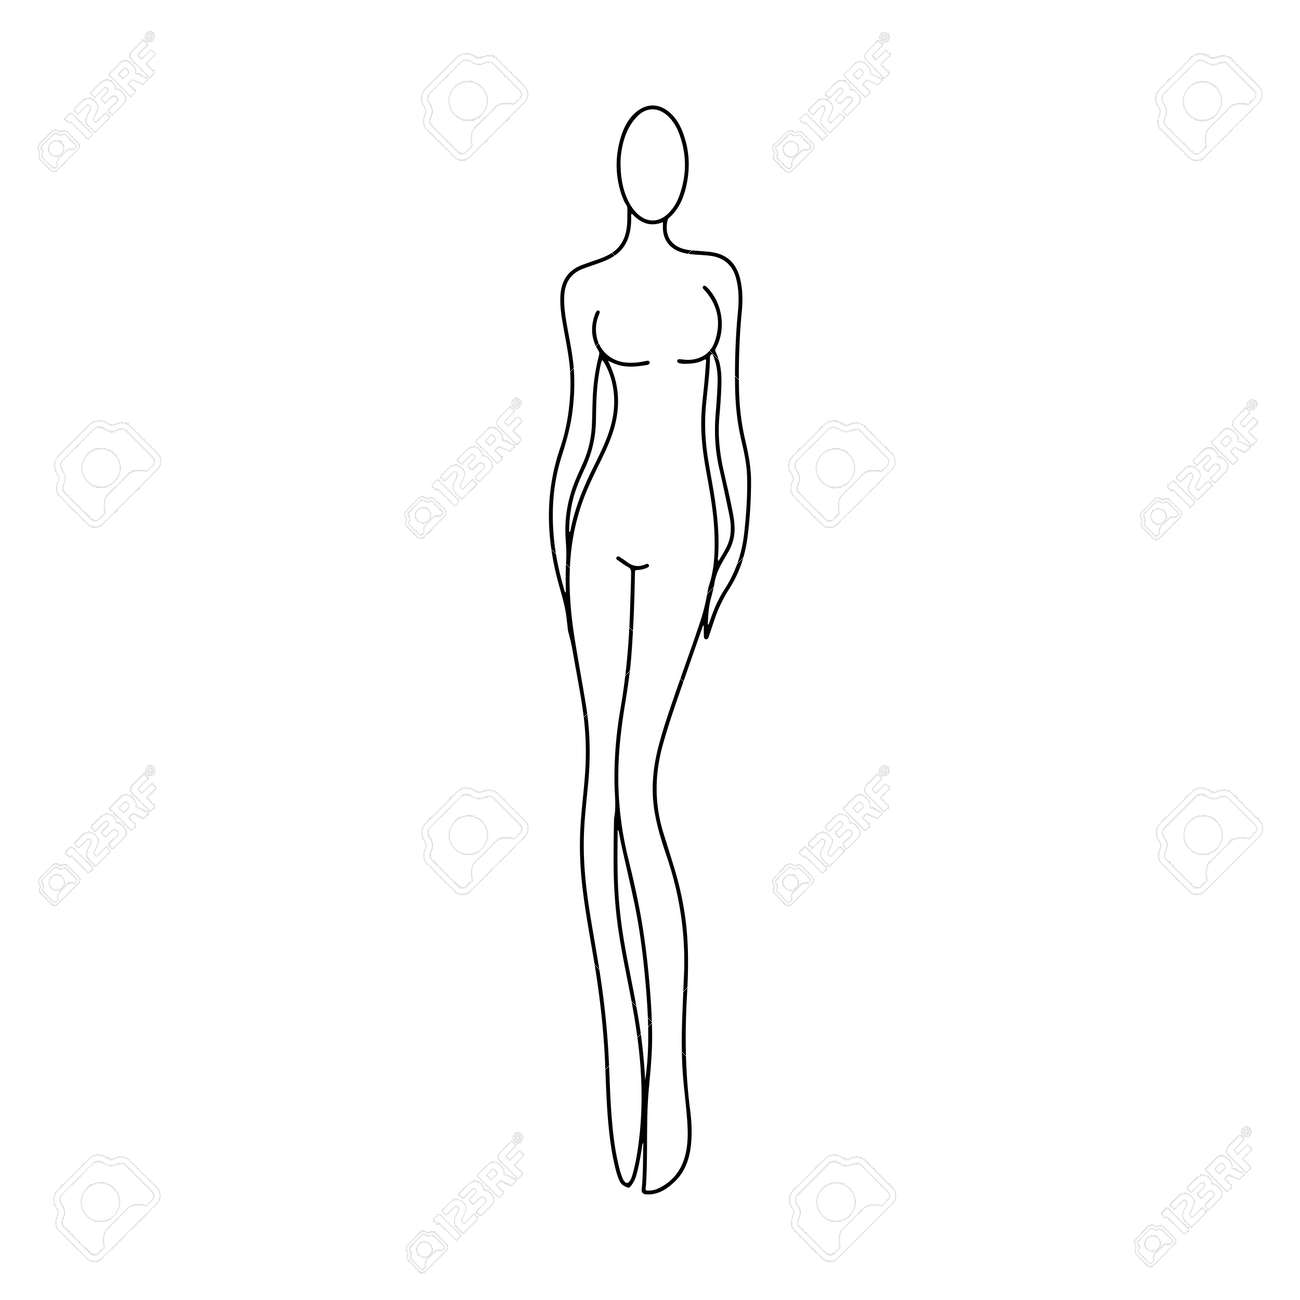 outline girl model template for fashion women figure sketching